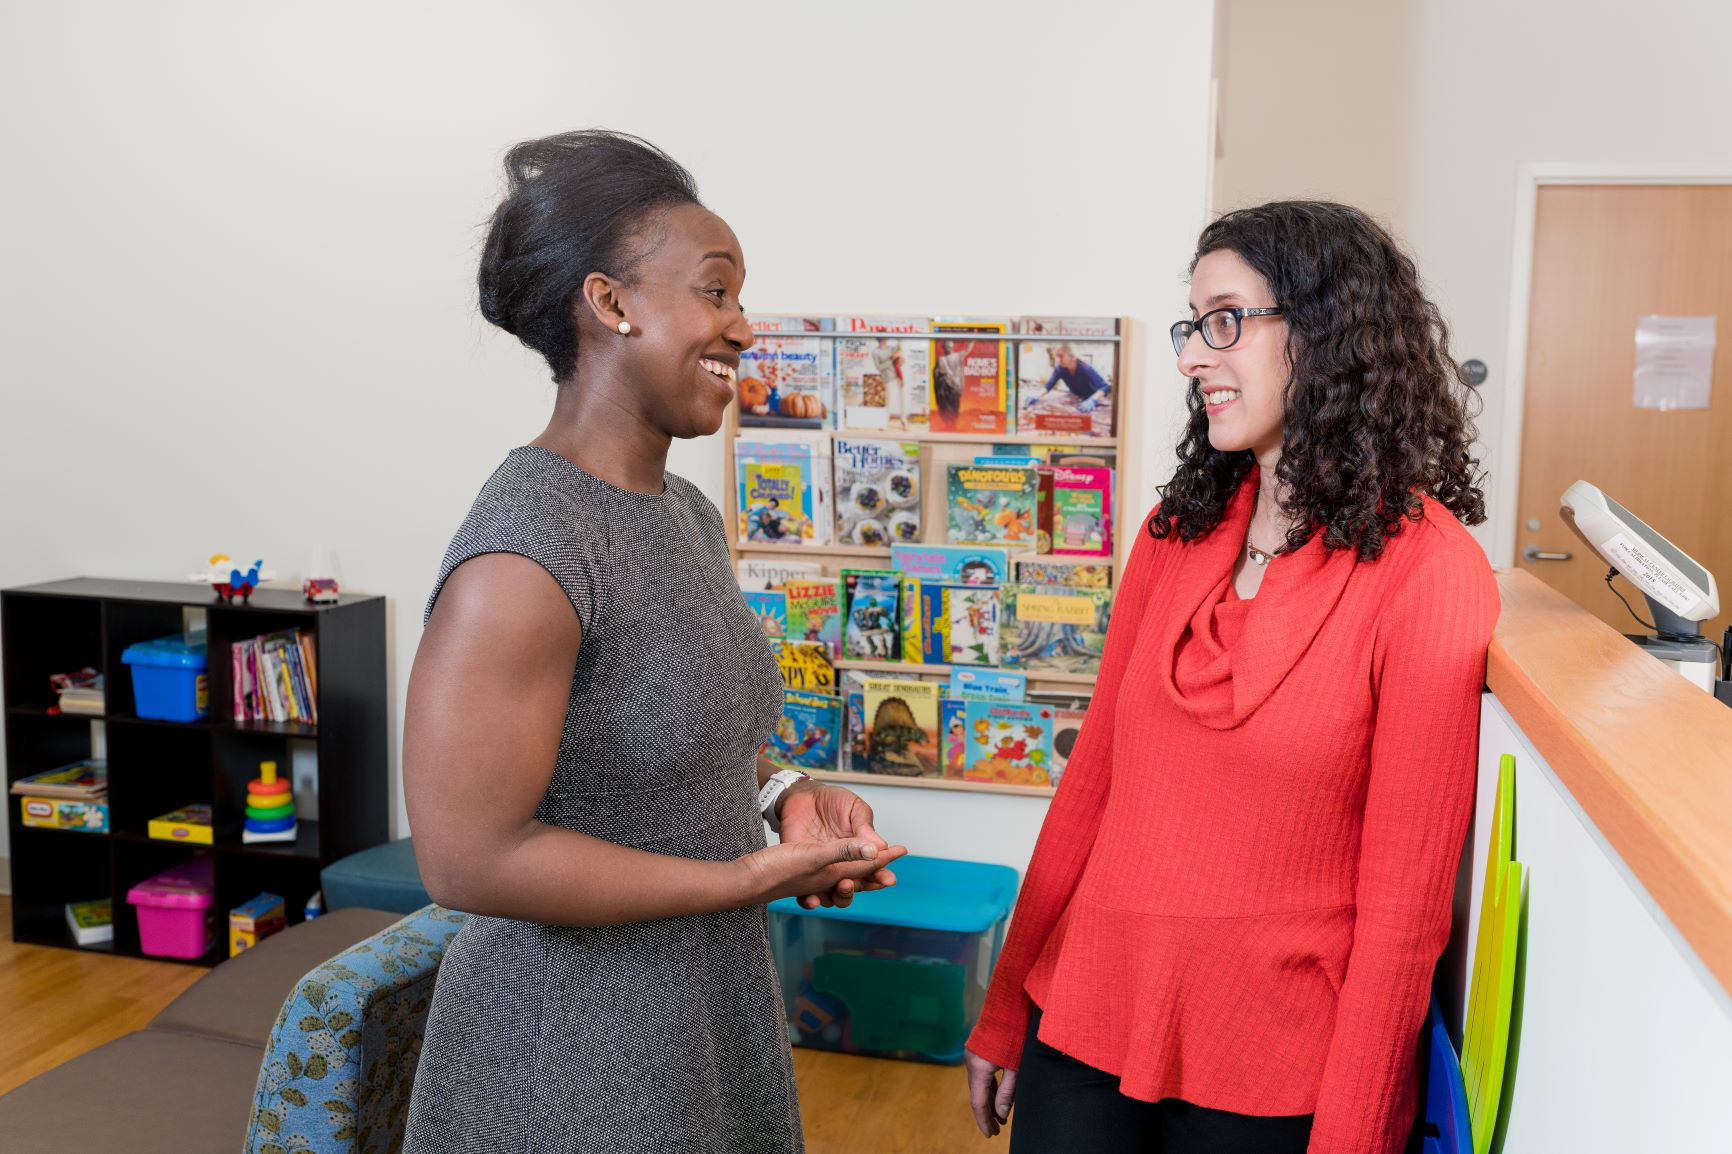 Tufikameni Brima, Ph.D. and Laura Silverman, Ph.D. discuss their research in the field of IDD.